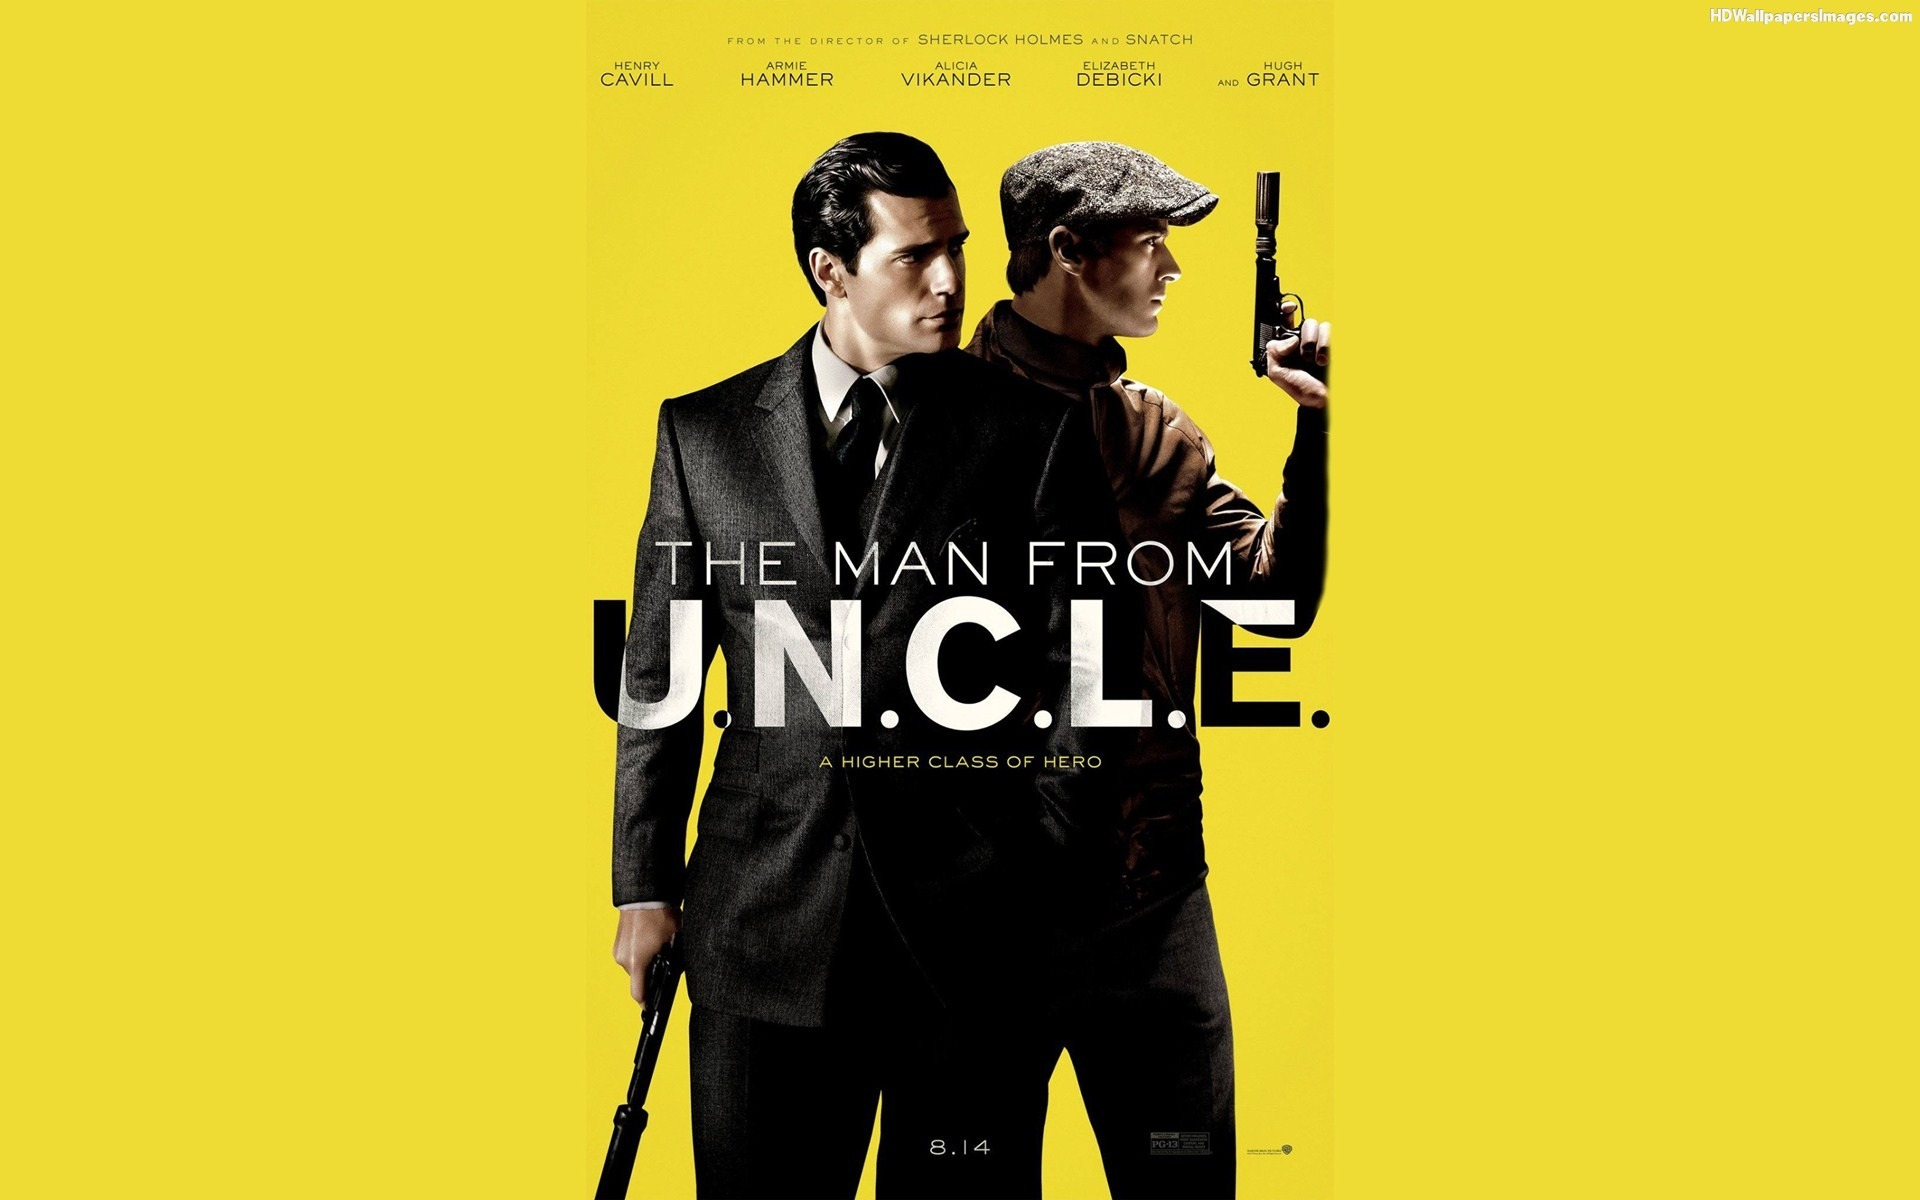 The Man From U.N.C.L.E. Review English